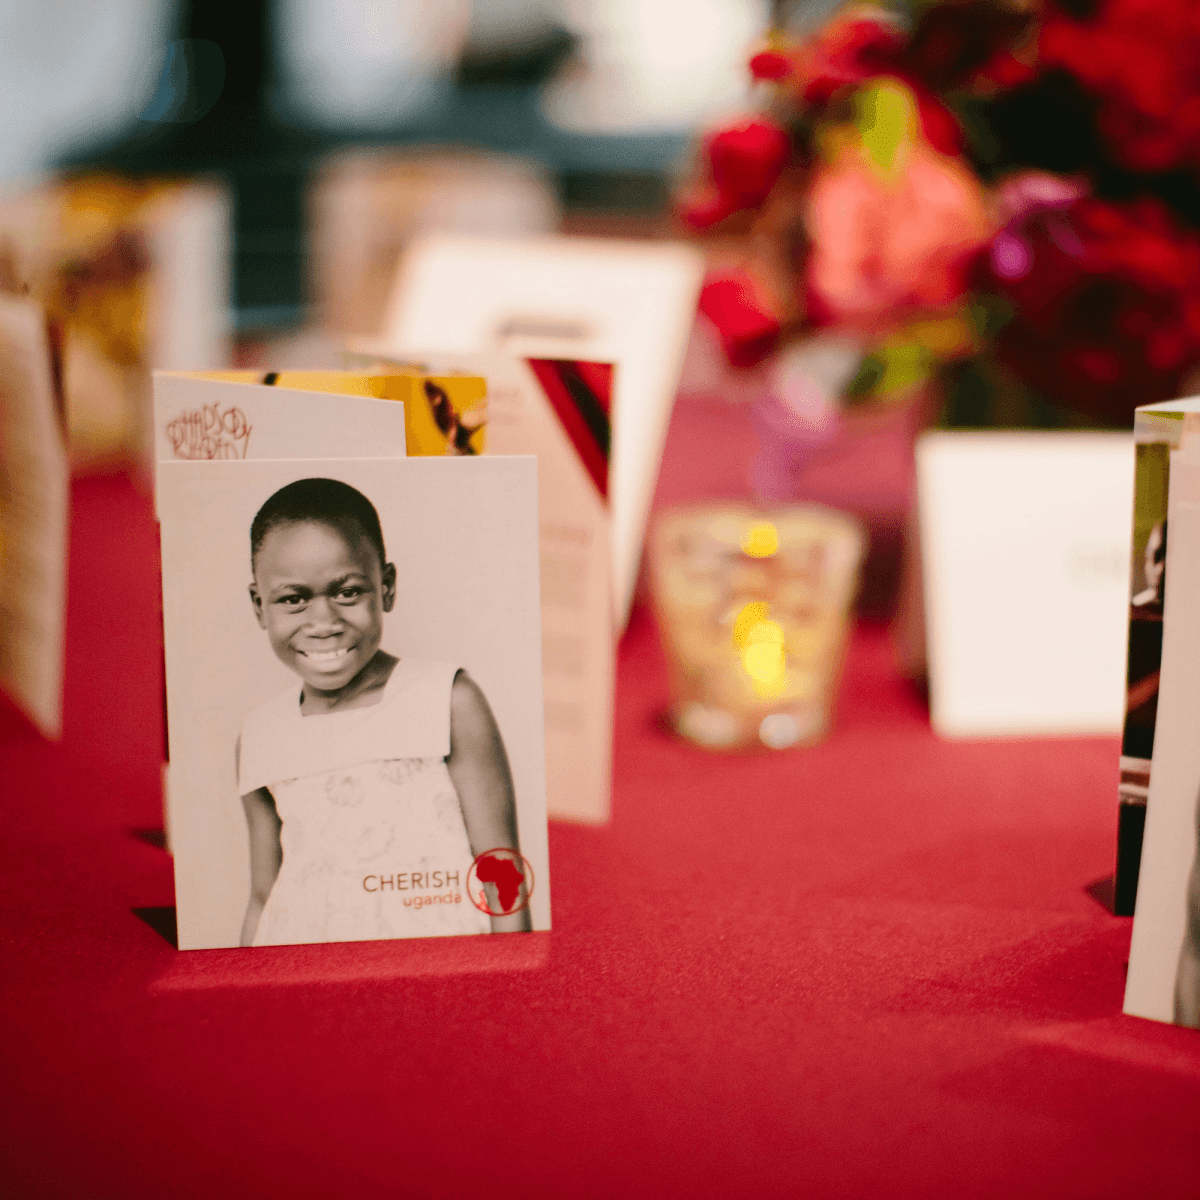 Cherish cards featuring children in Uganda add a personal touch to the table decor